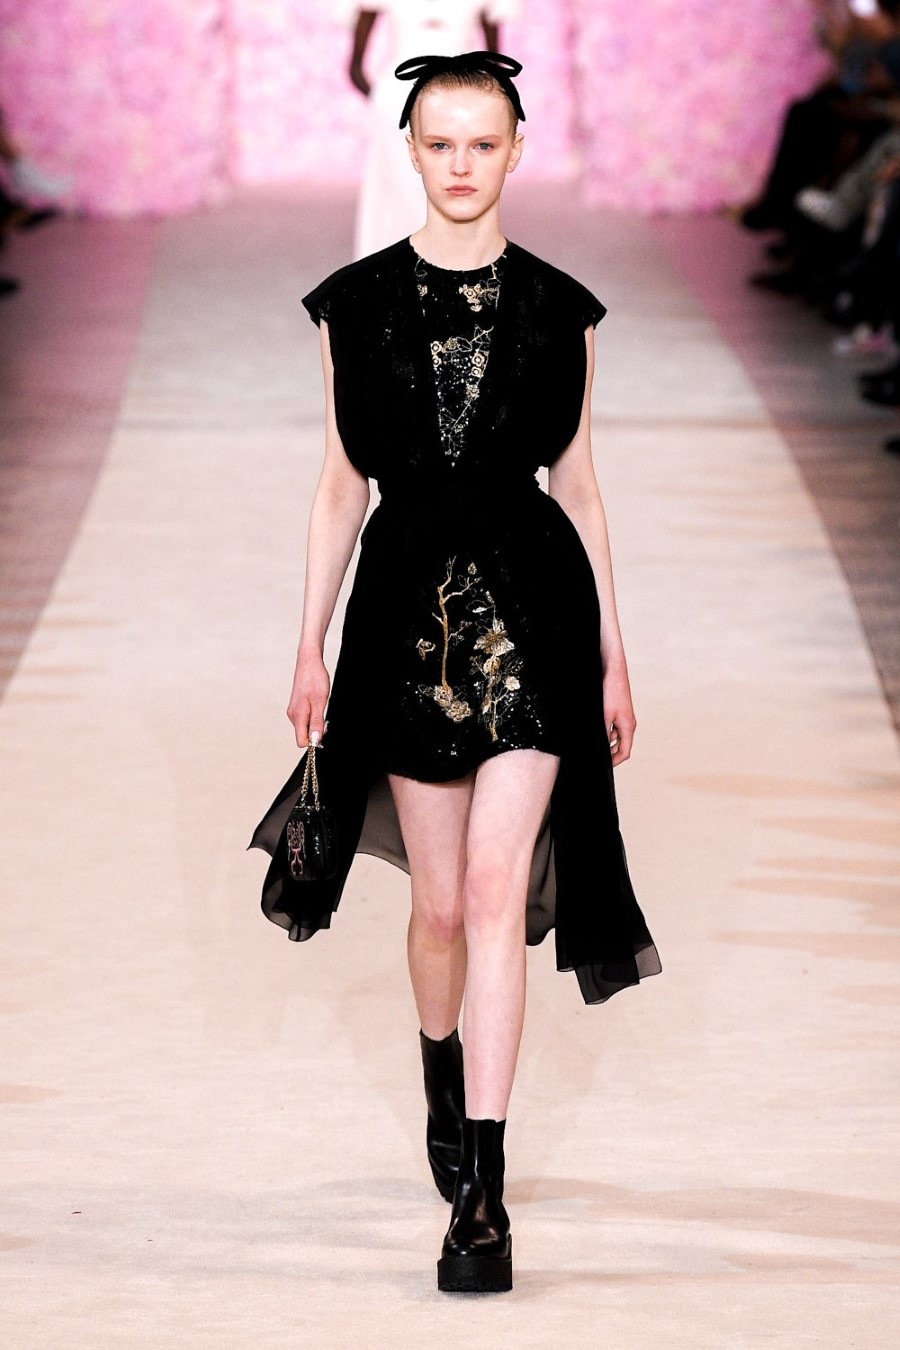 Giambattista Valli - Fall/Winter 2020 - Paris Fashion WeekGiambattista Valli - Fall/Winter 2020 - Paris Fashion Week